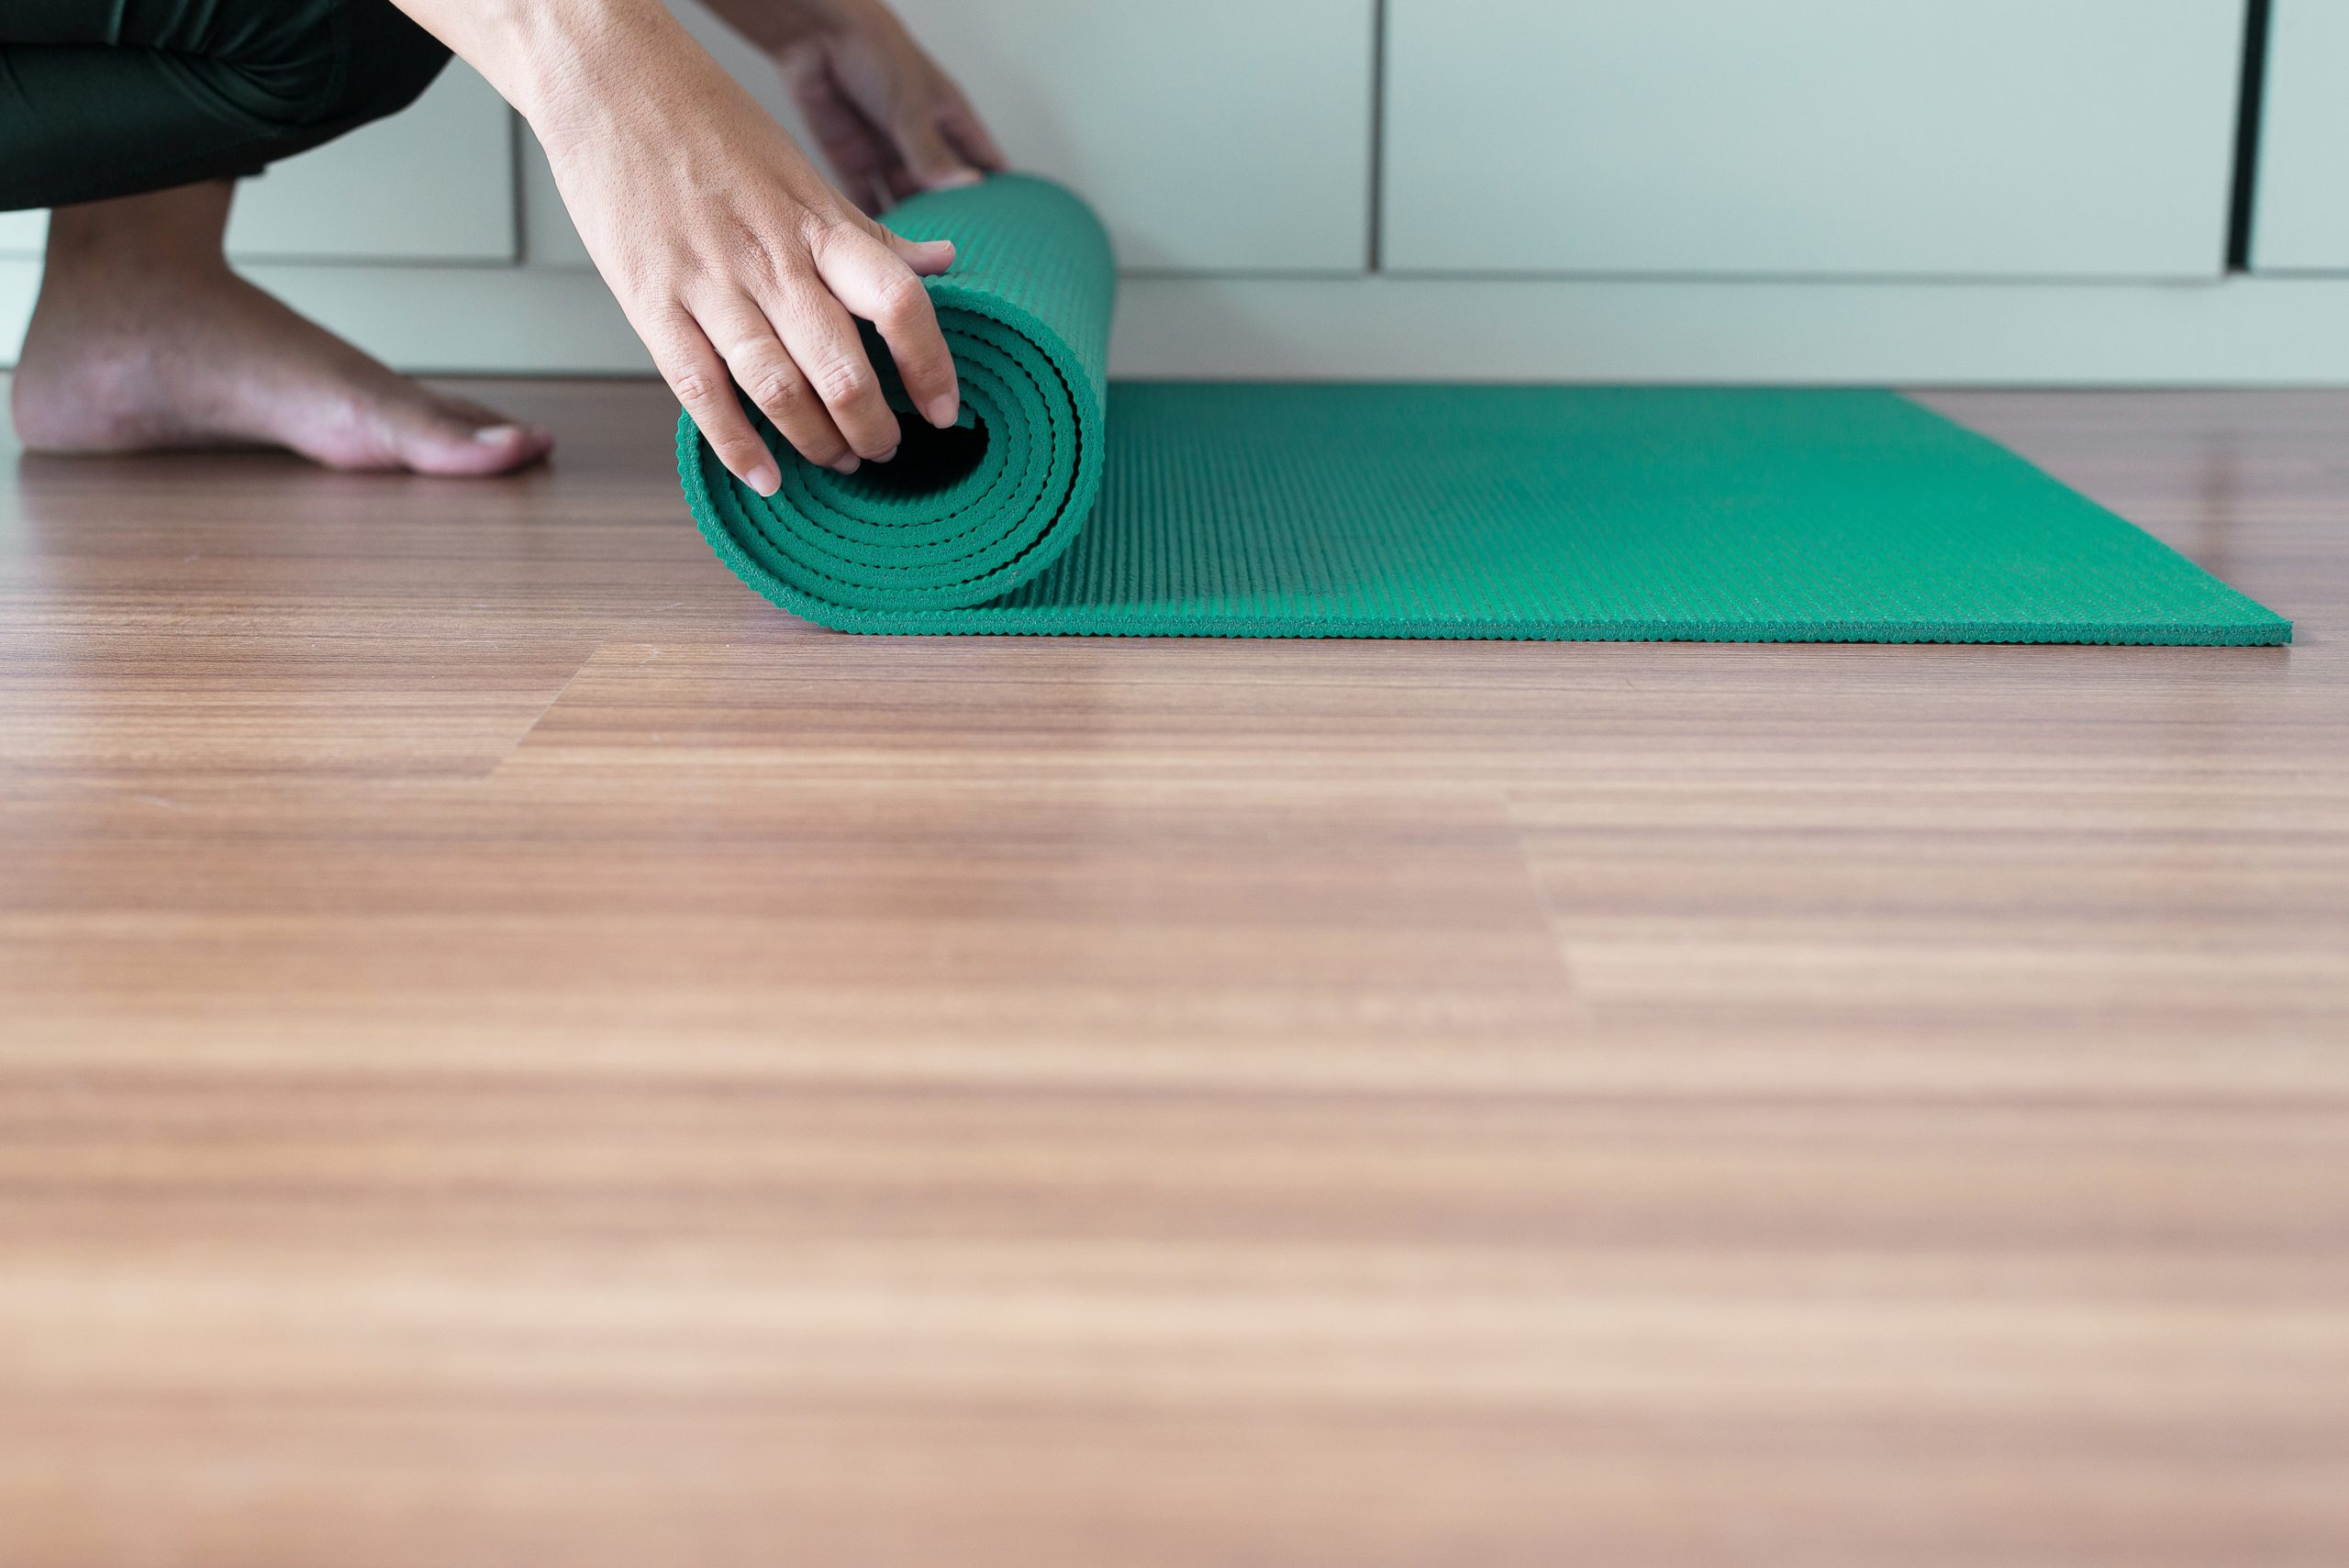 Woman hand rolling or folding green yoga mat after a workout